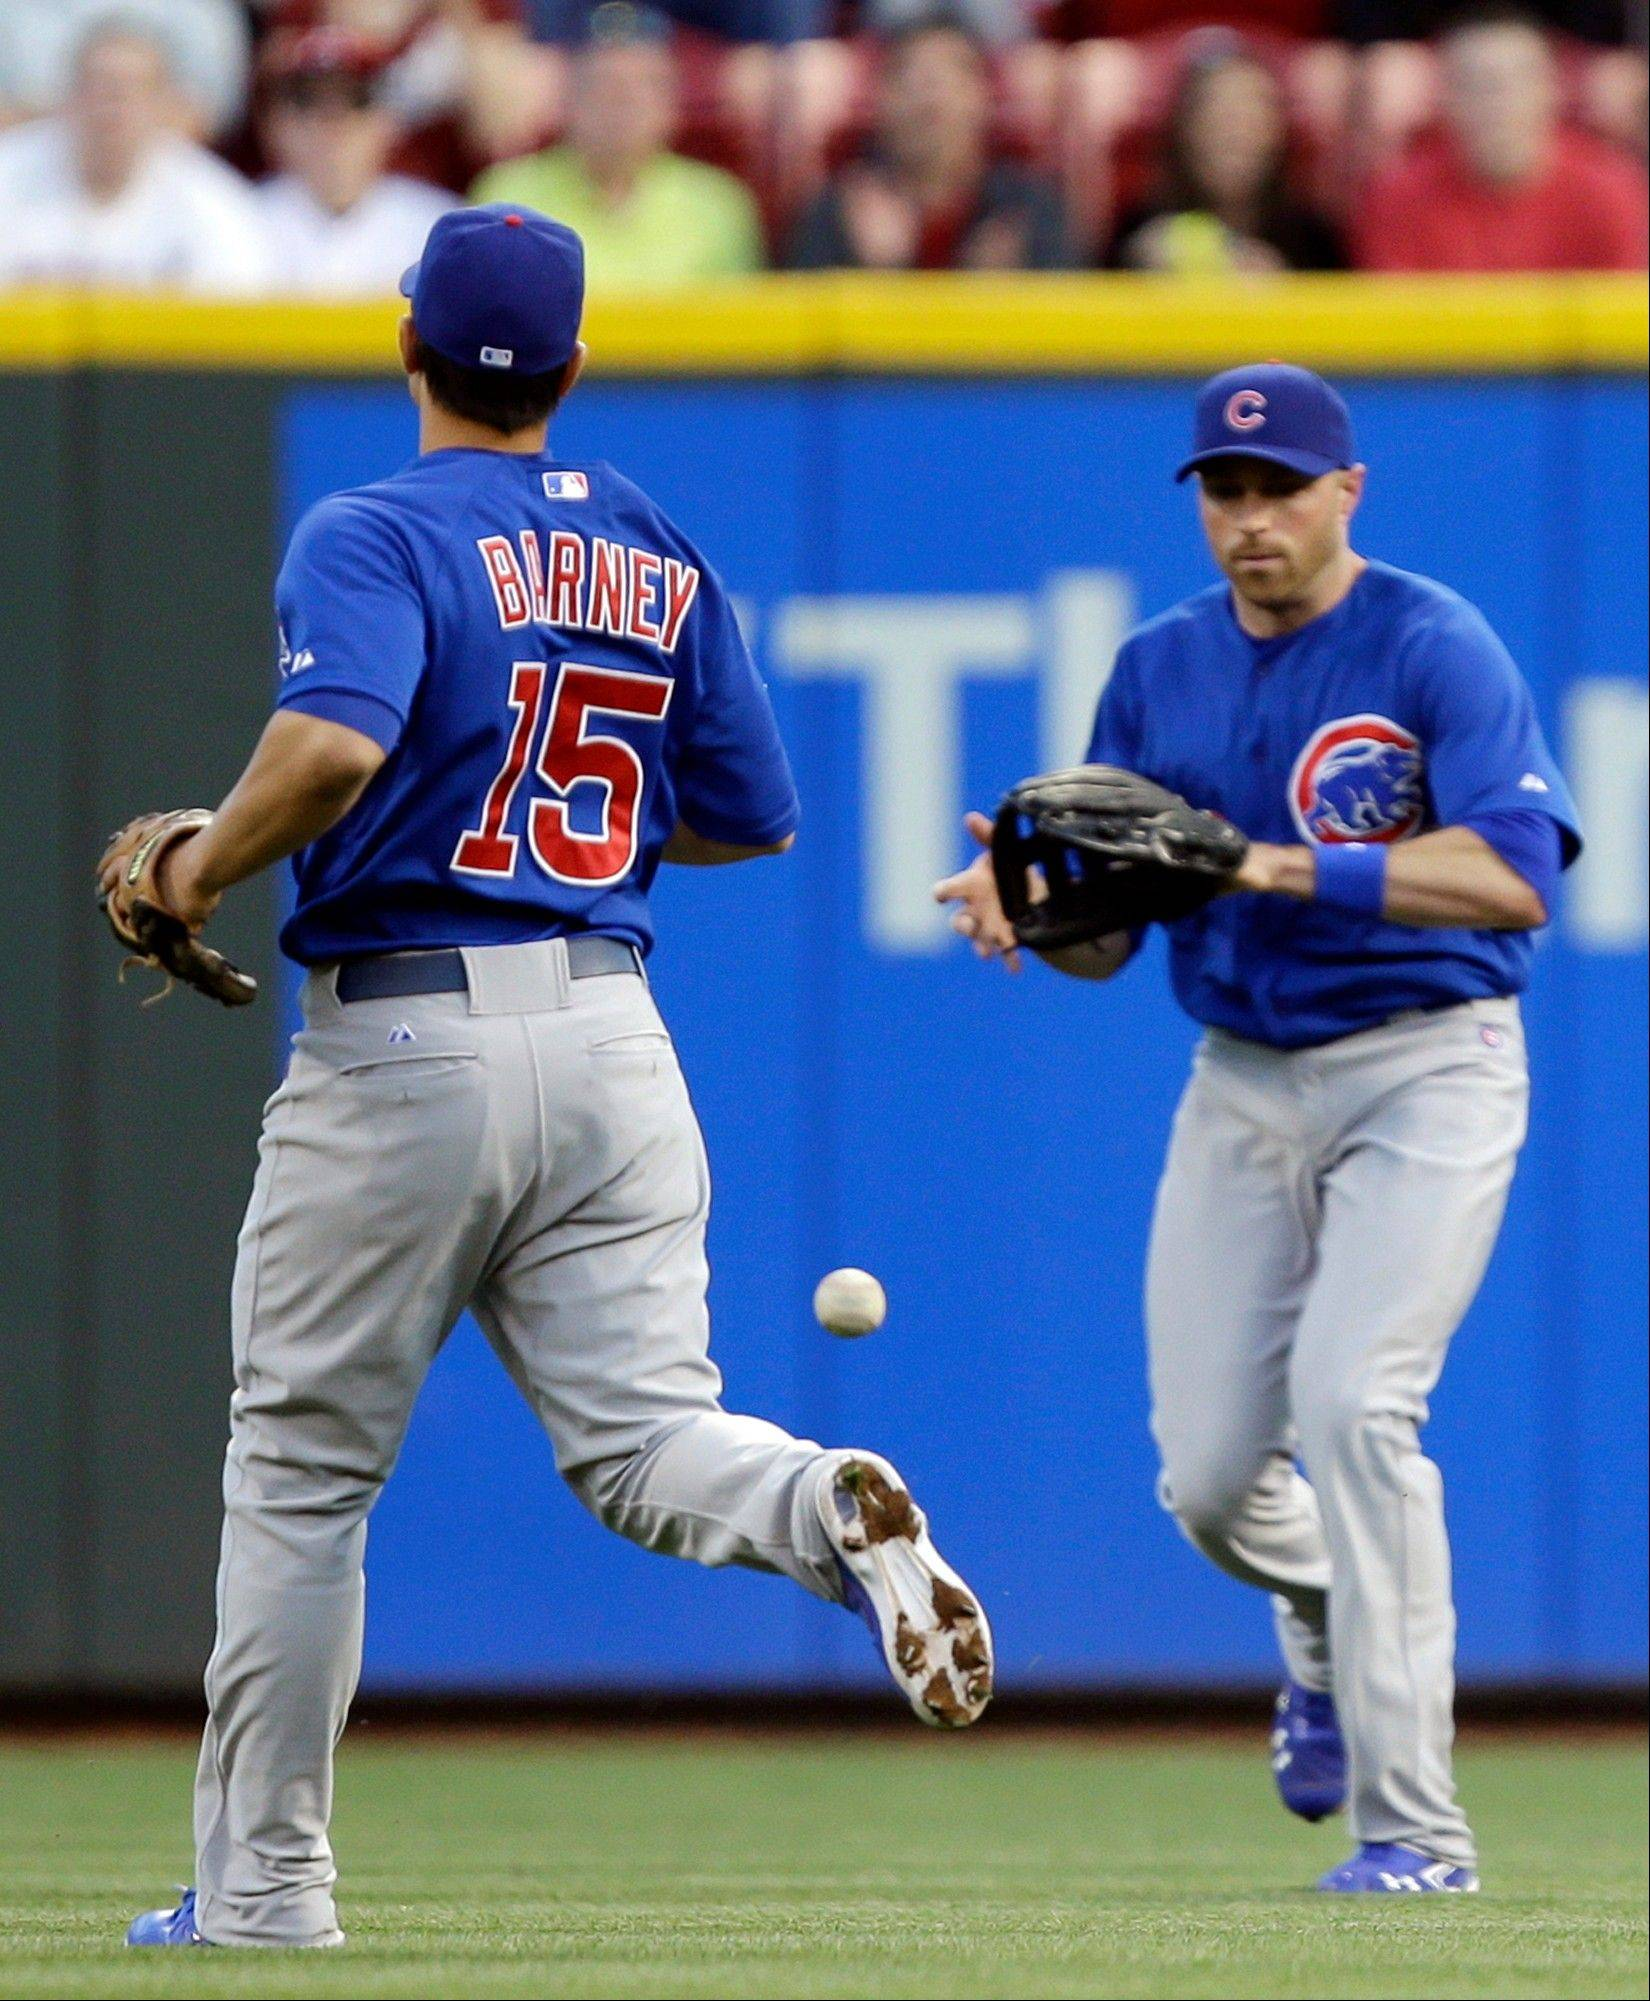 A basehit by the Reds' Devin Mesoraco falls between Cubs second baseman Darwin Barney and right fielder Nate Schierholtz in the third inning Mondayin Cincinnati.